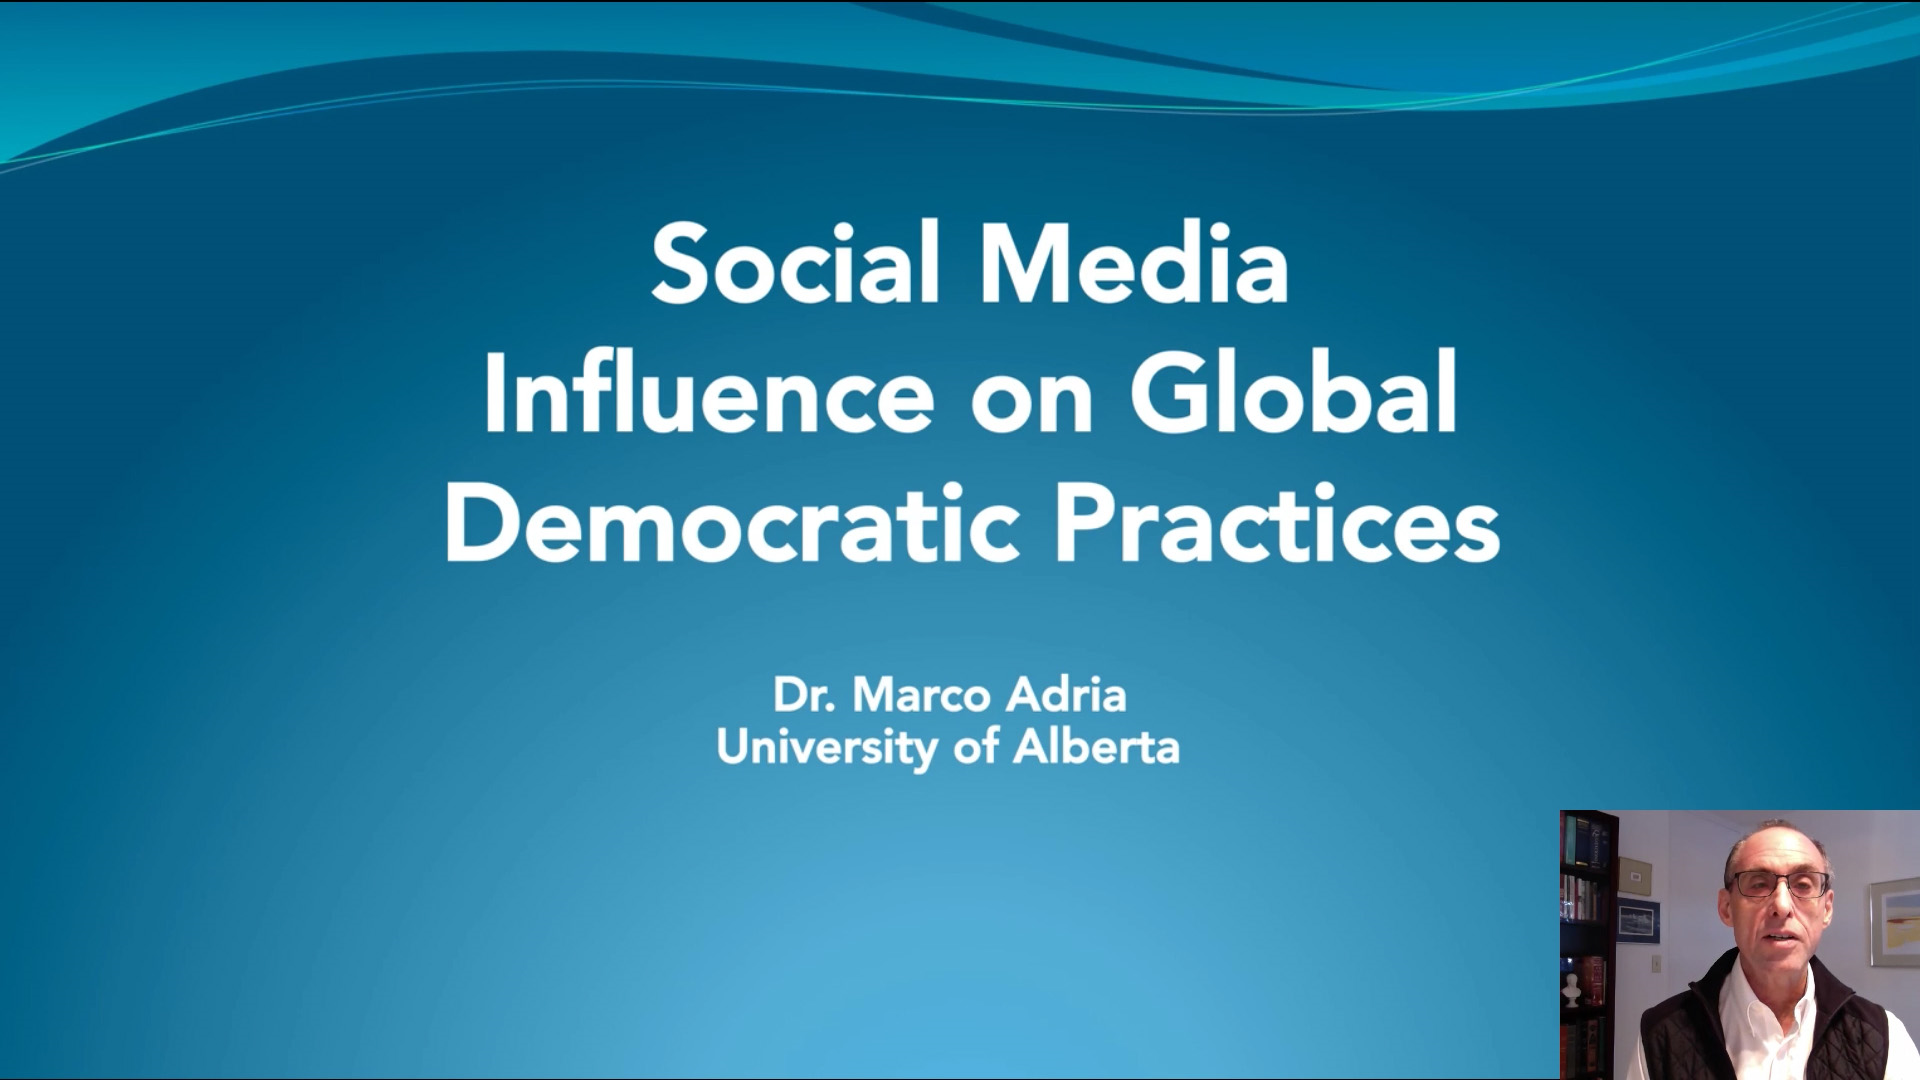 Social Media Influence on Global Democratic Practices